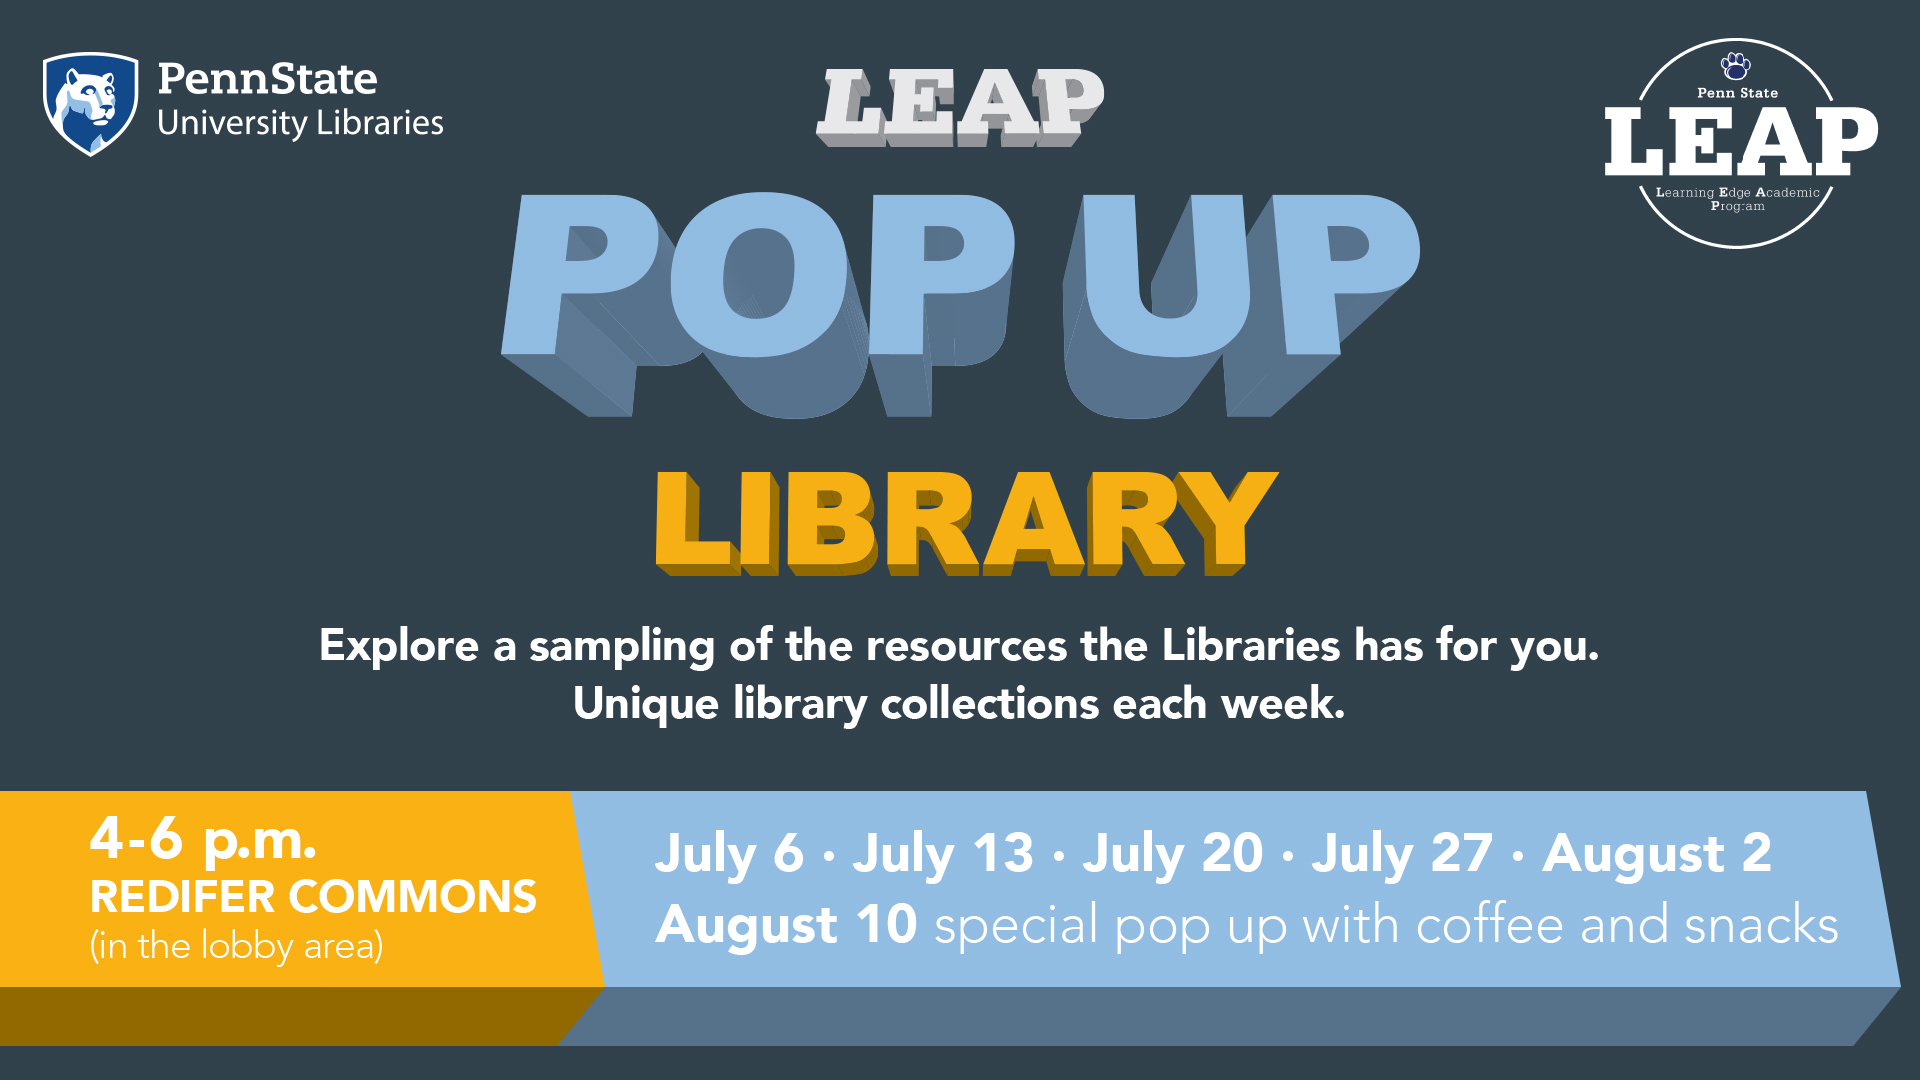 LEAP Pop Up Library! Explore a sampling of the resources the Libraries has for you. Unique library collections each week. In Redifer Commons, 4 to 6 pm, July 6, 13, 20, 27 and August 2. August 10 pop up includes coffee and snacks!